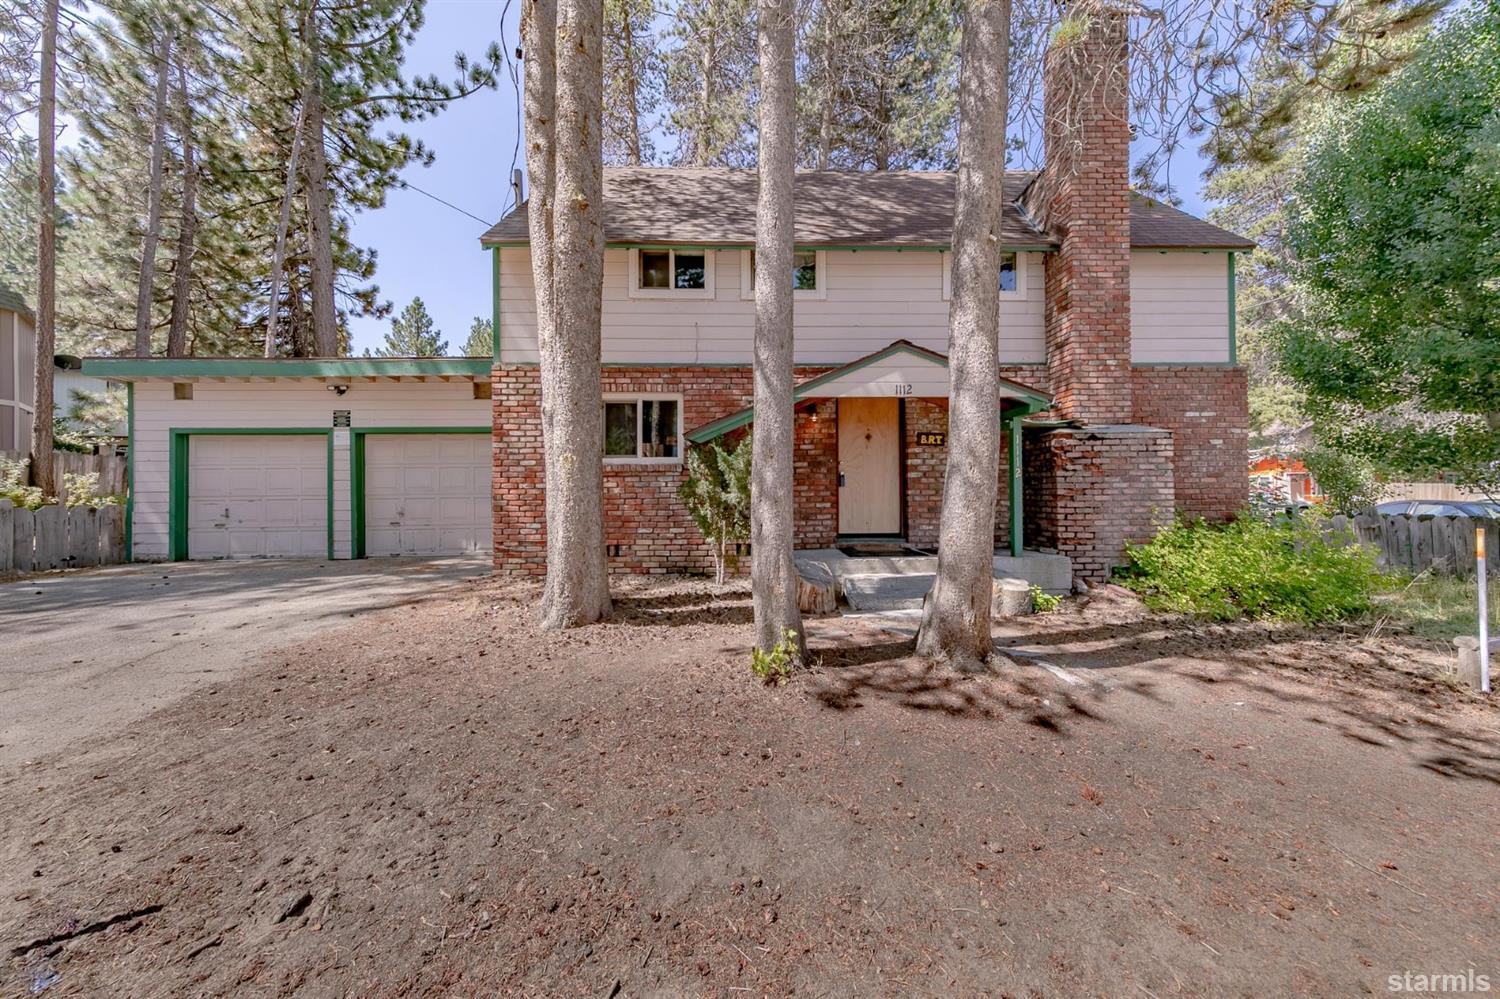 Sonora Avenue, SOUTH LAKE TAHOE, CA 96150